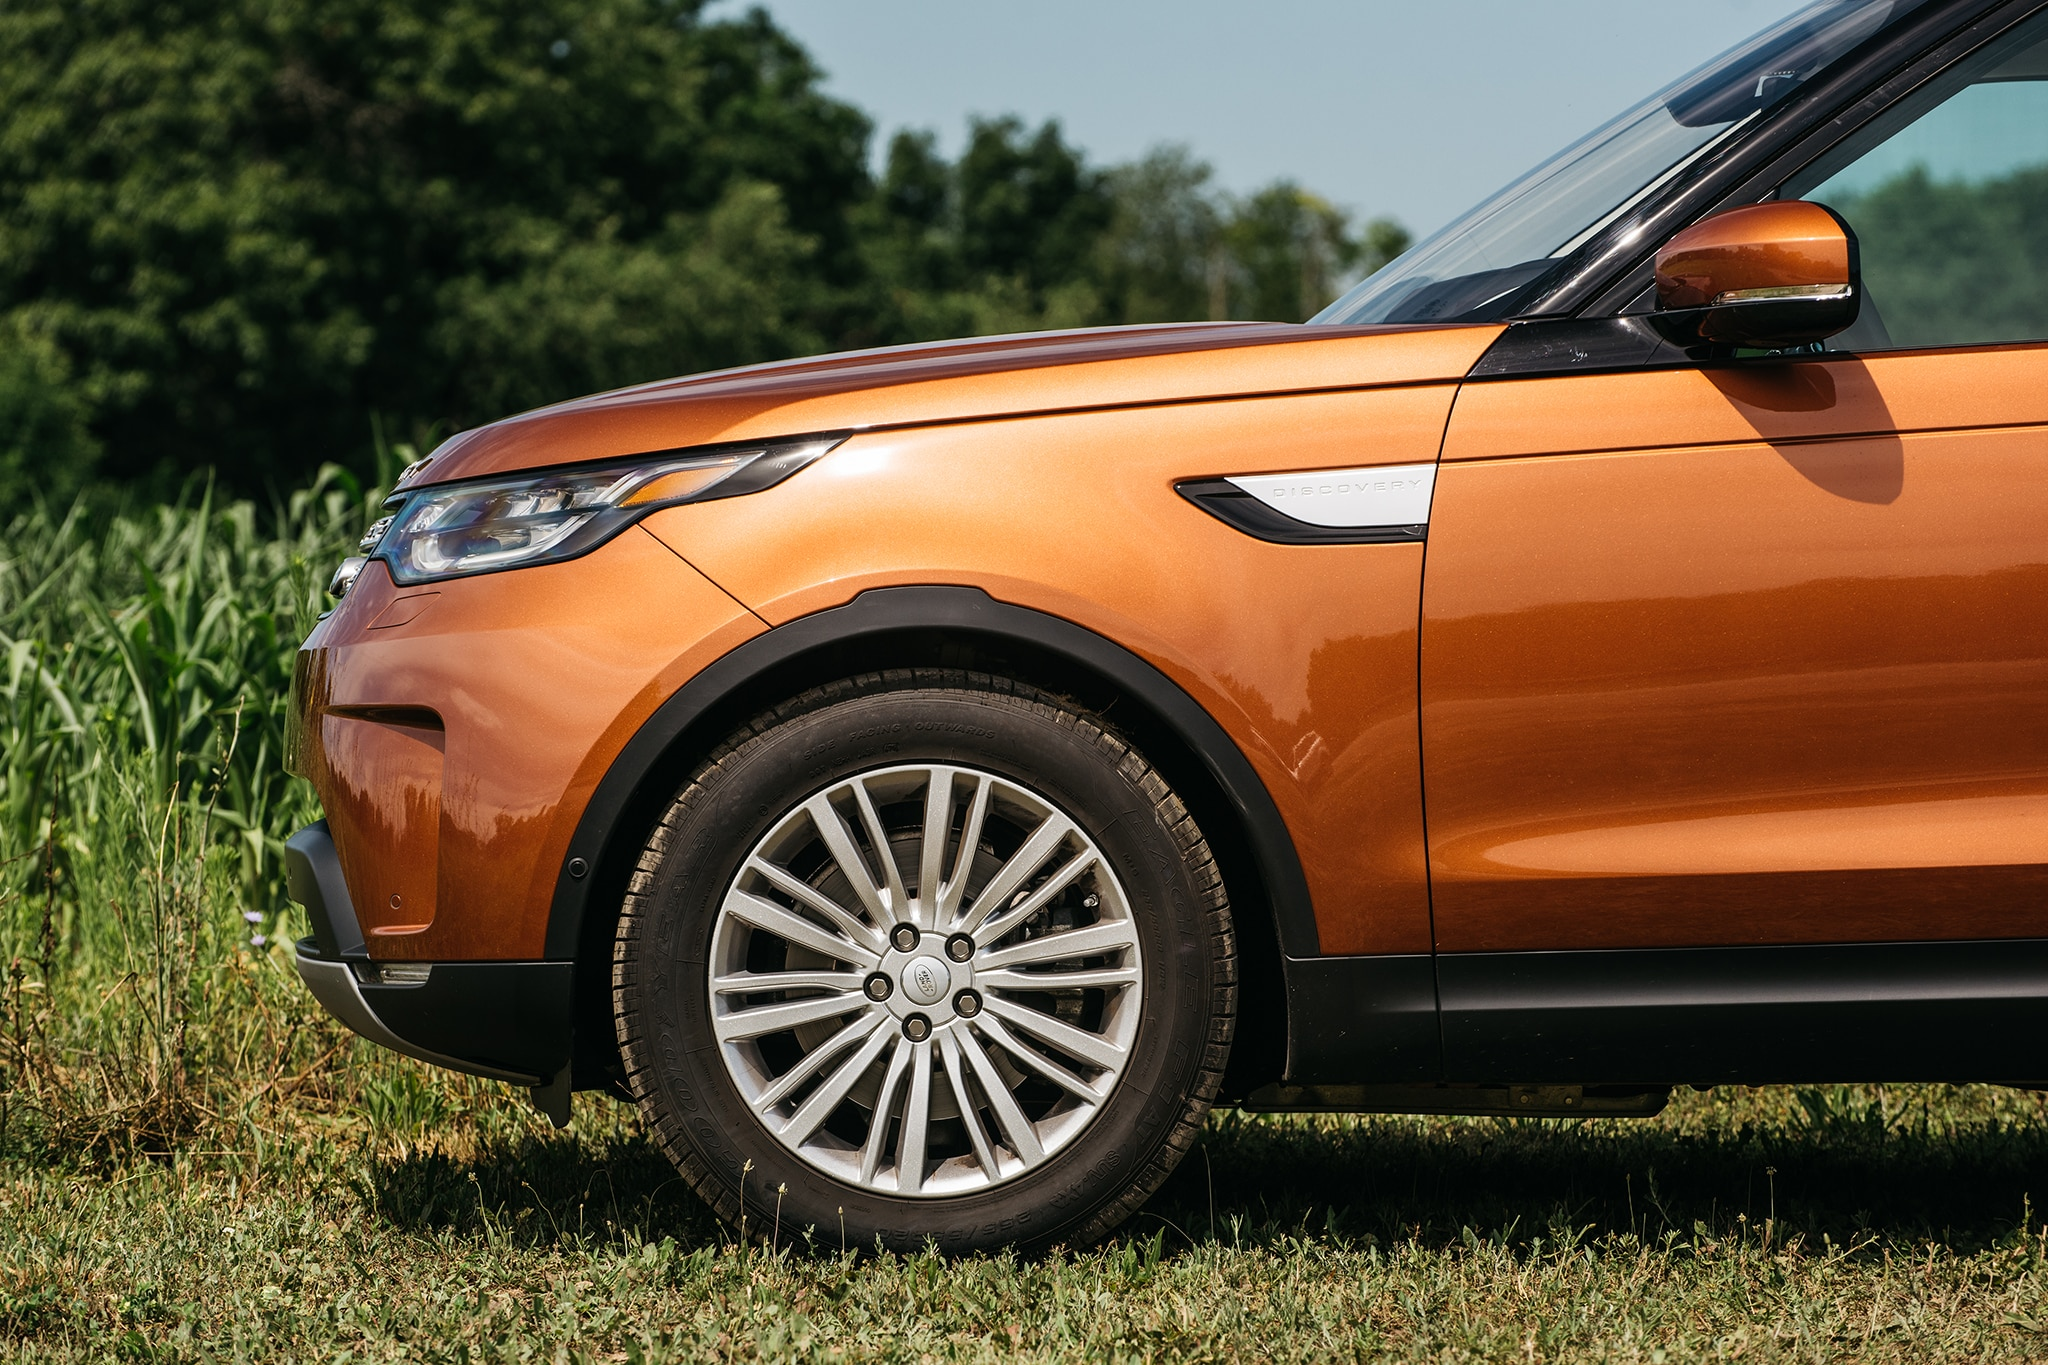 2017 Land Rover Discovery Diesel Long-Term Test: Sad To See